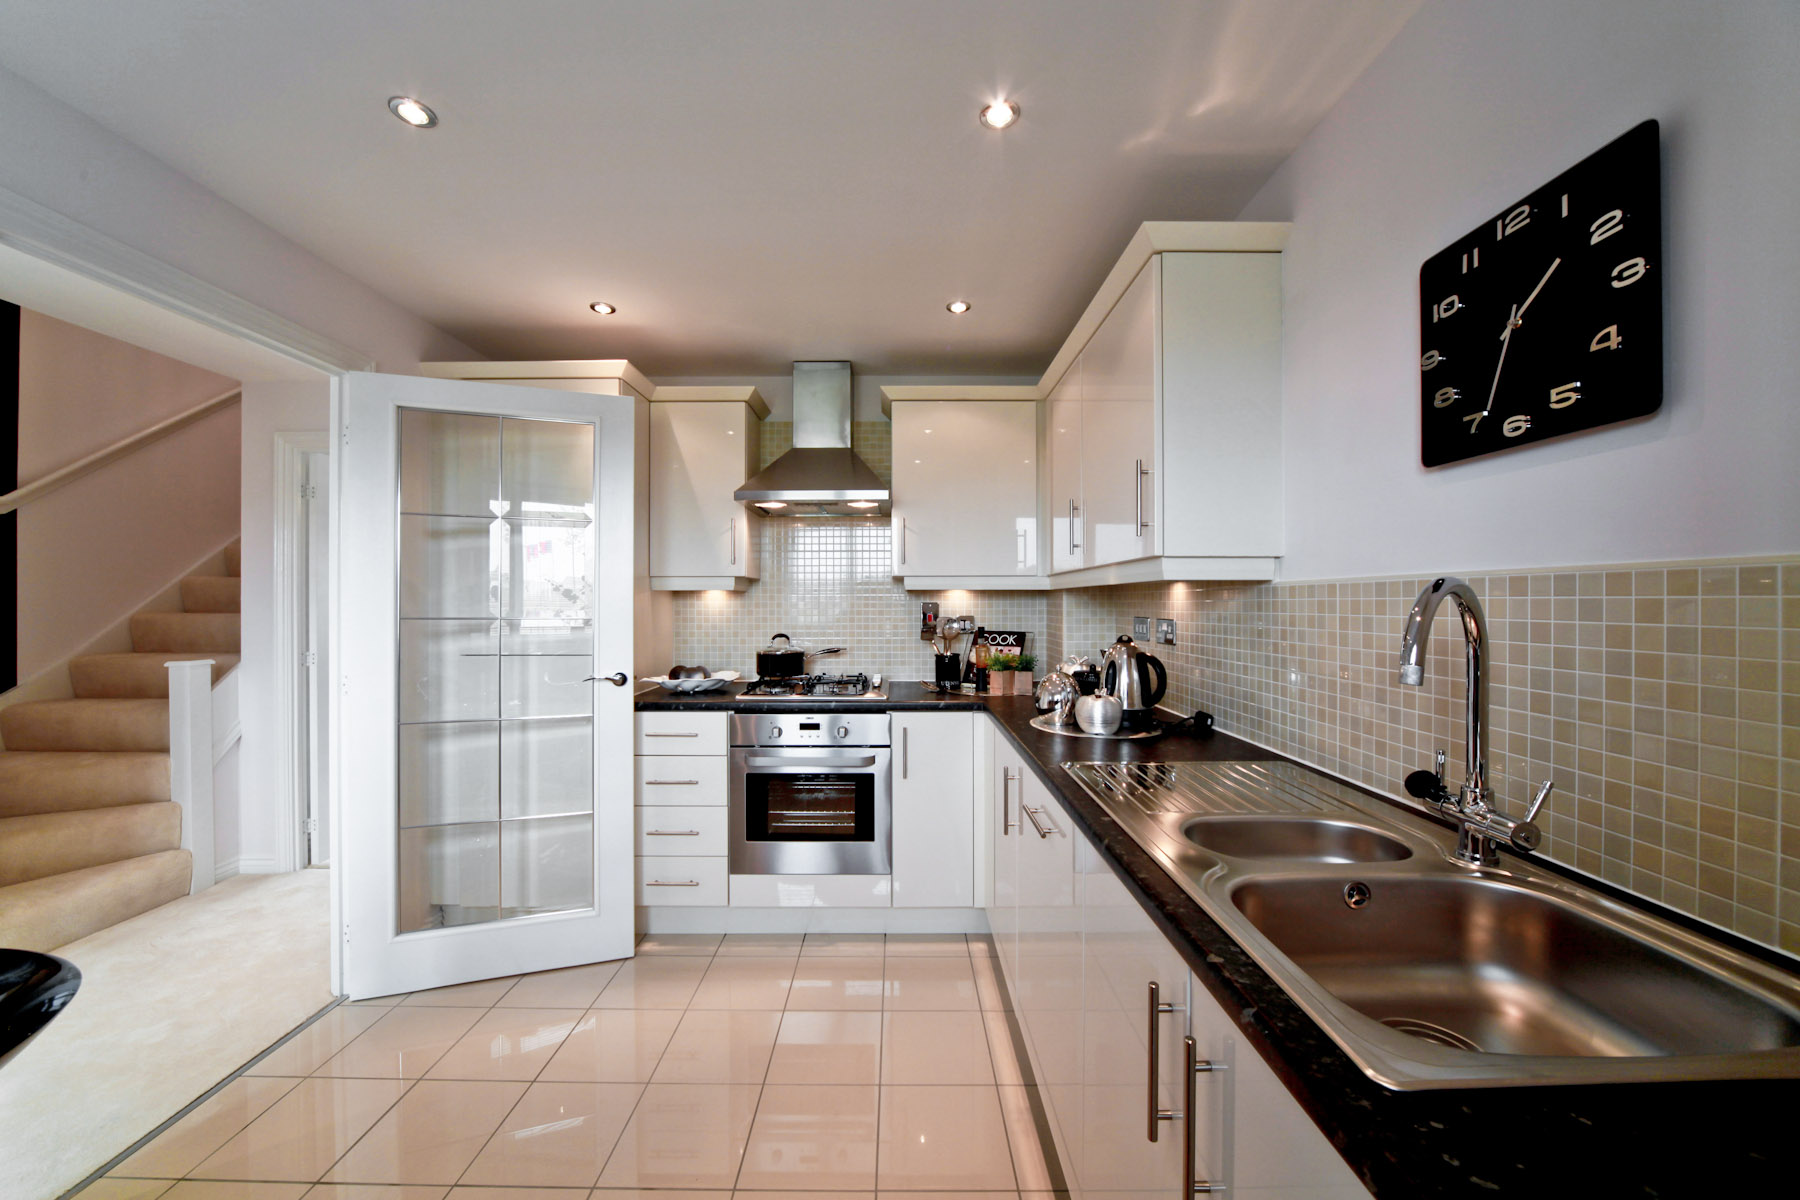 north-east-crofton-grange-grasmere-21-kitchen